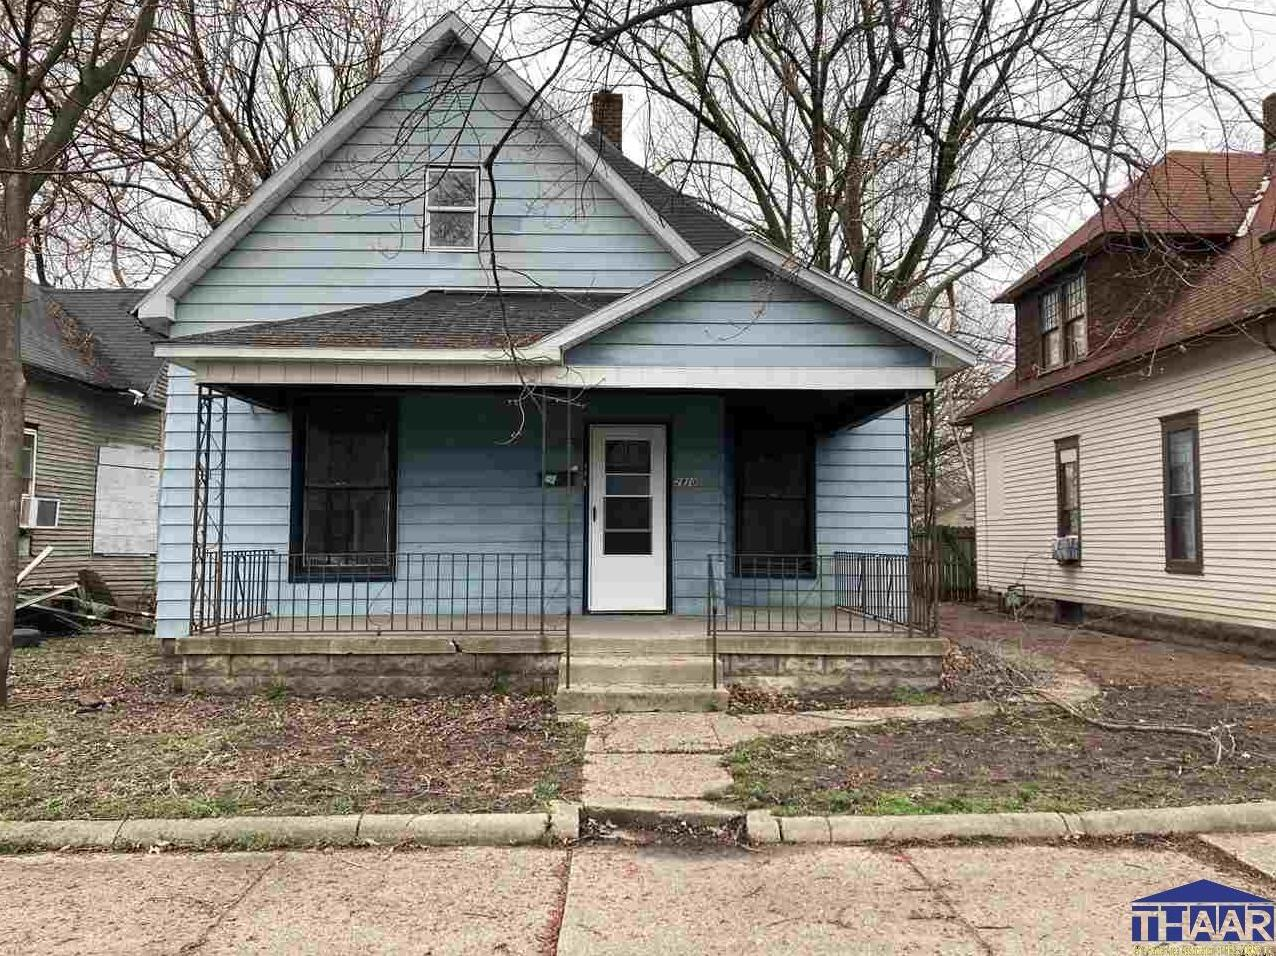 Photo of 2220 Sycamore Street Terre Haute IN 47807